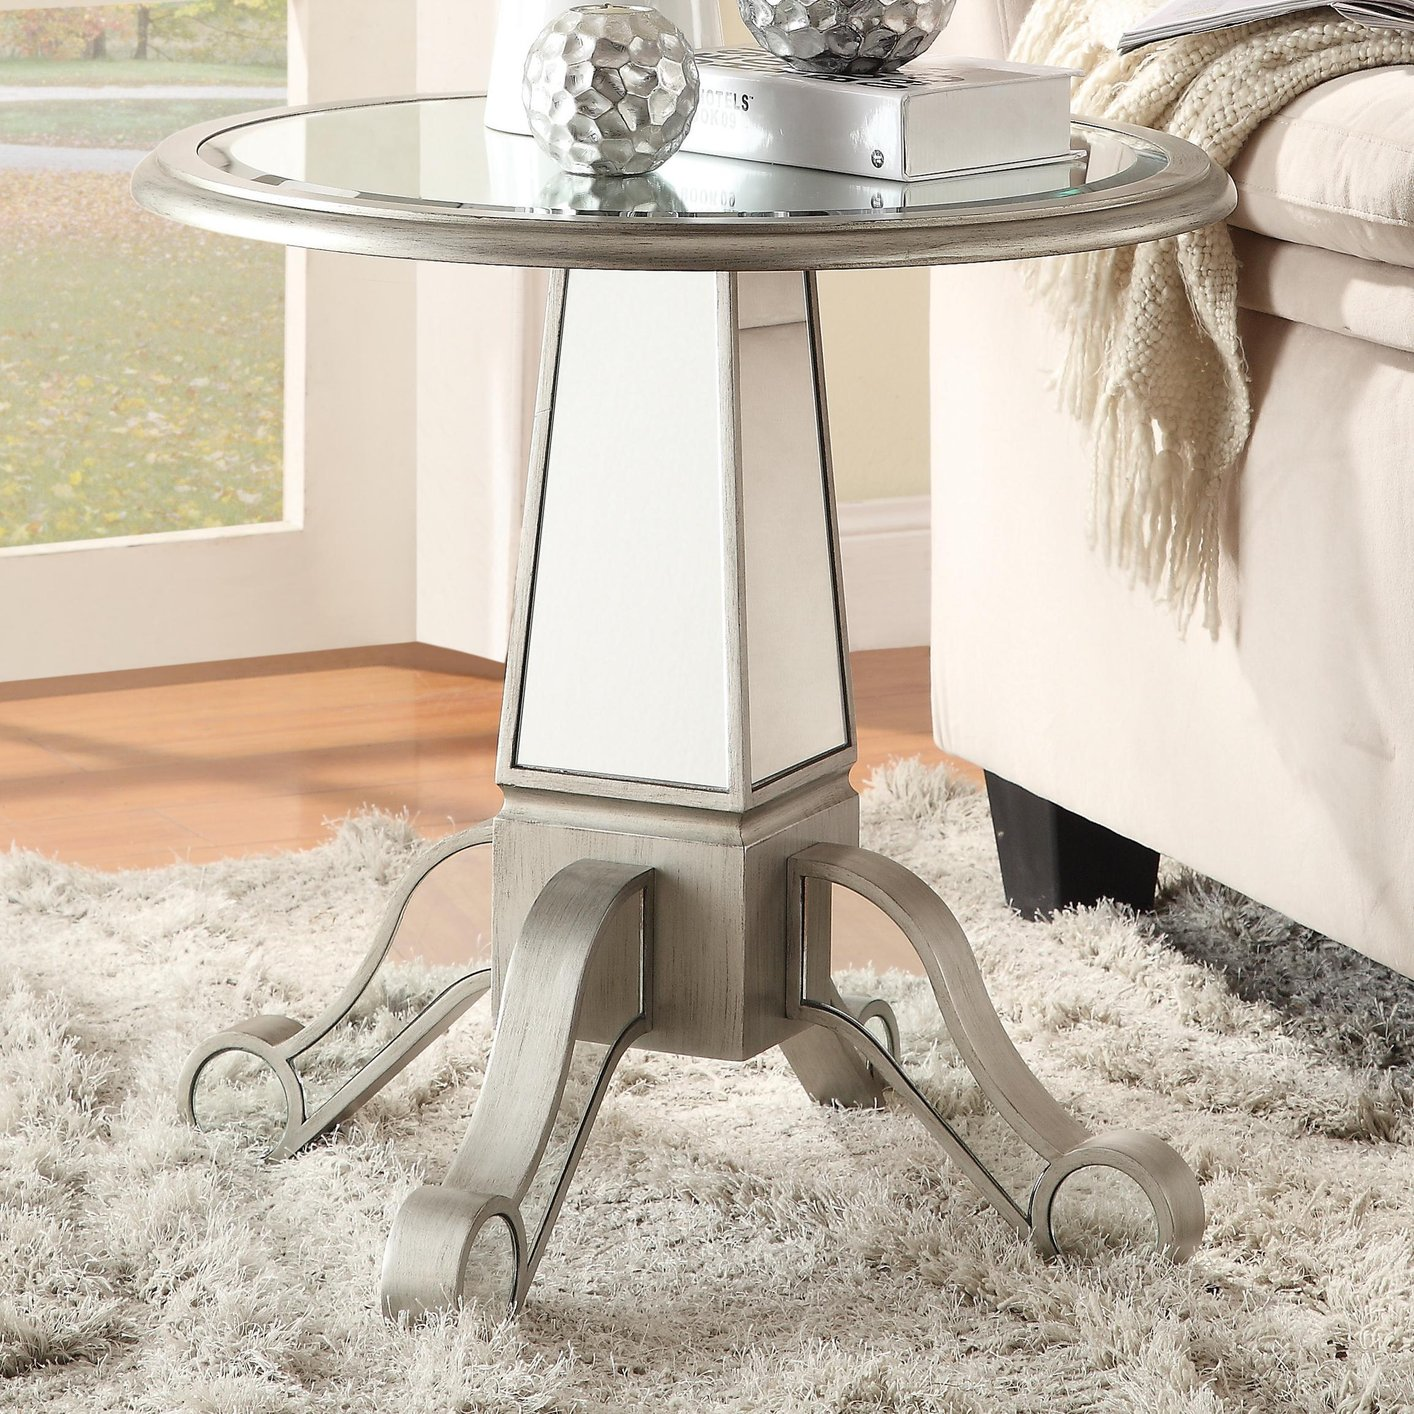 silver metal accent table steal sofa furniture los angeles glass round pier one black mirrored side ships lantern lamp mosaic counter height gathering target small wicker west elm